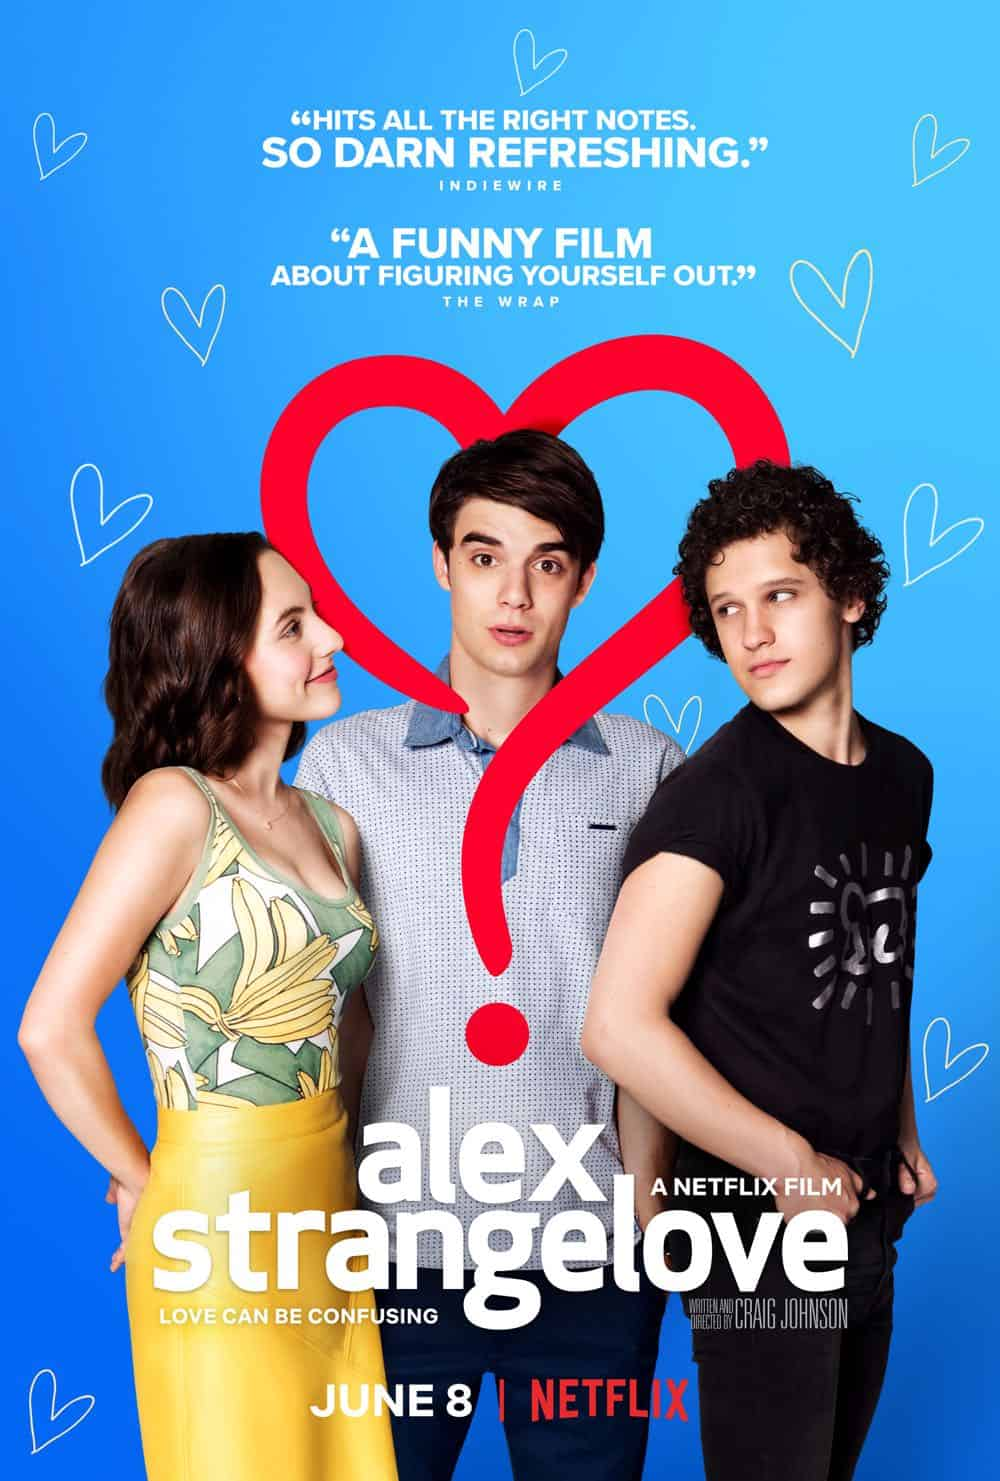 Alex-Strangelove-Poster-Key-Art-Netflix-Movie.jpg